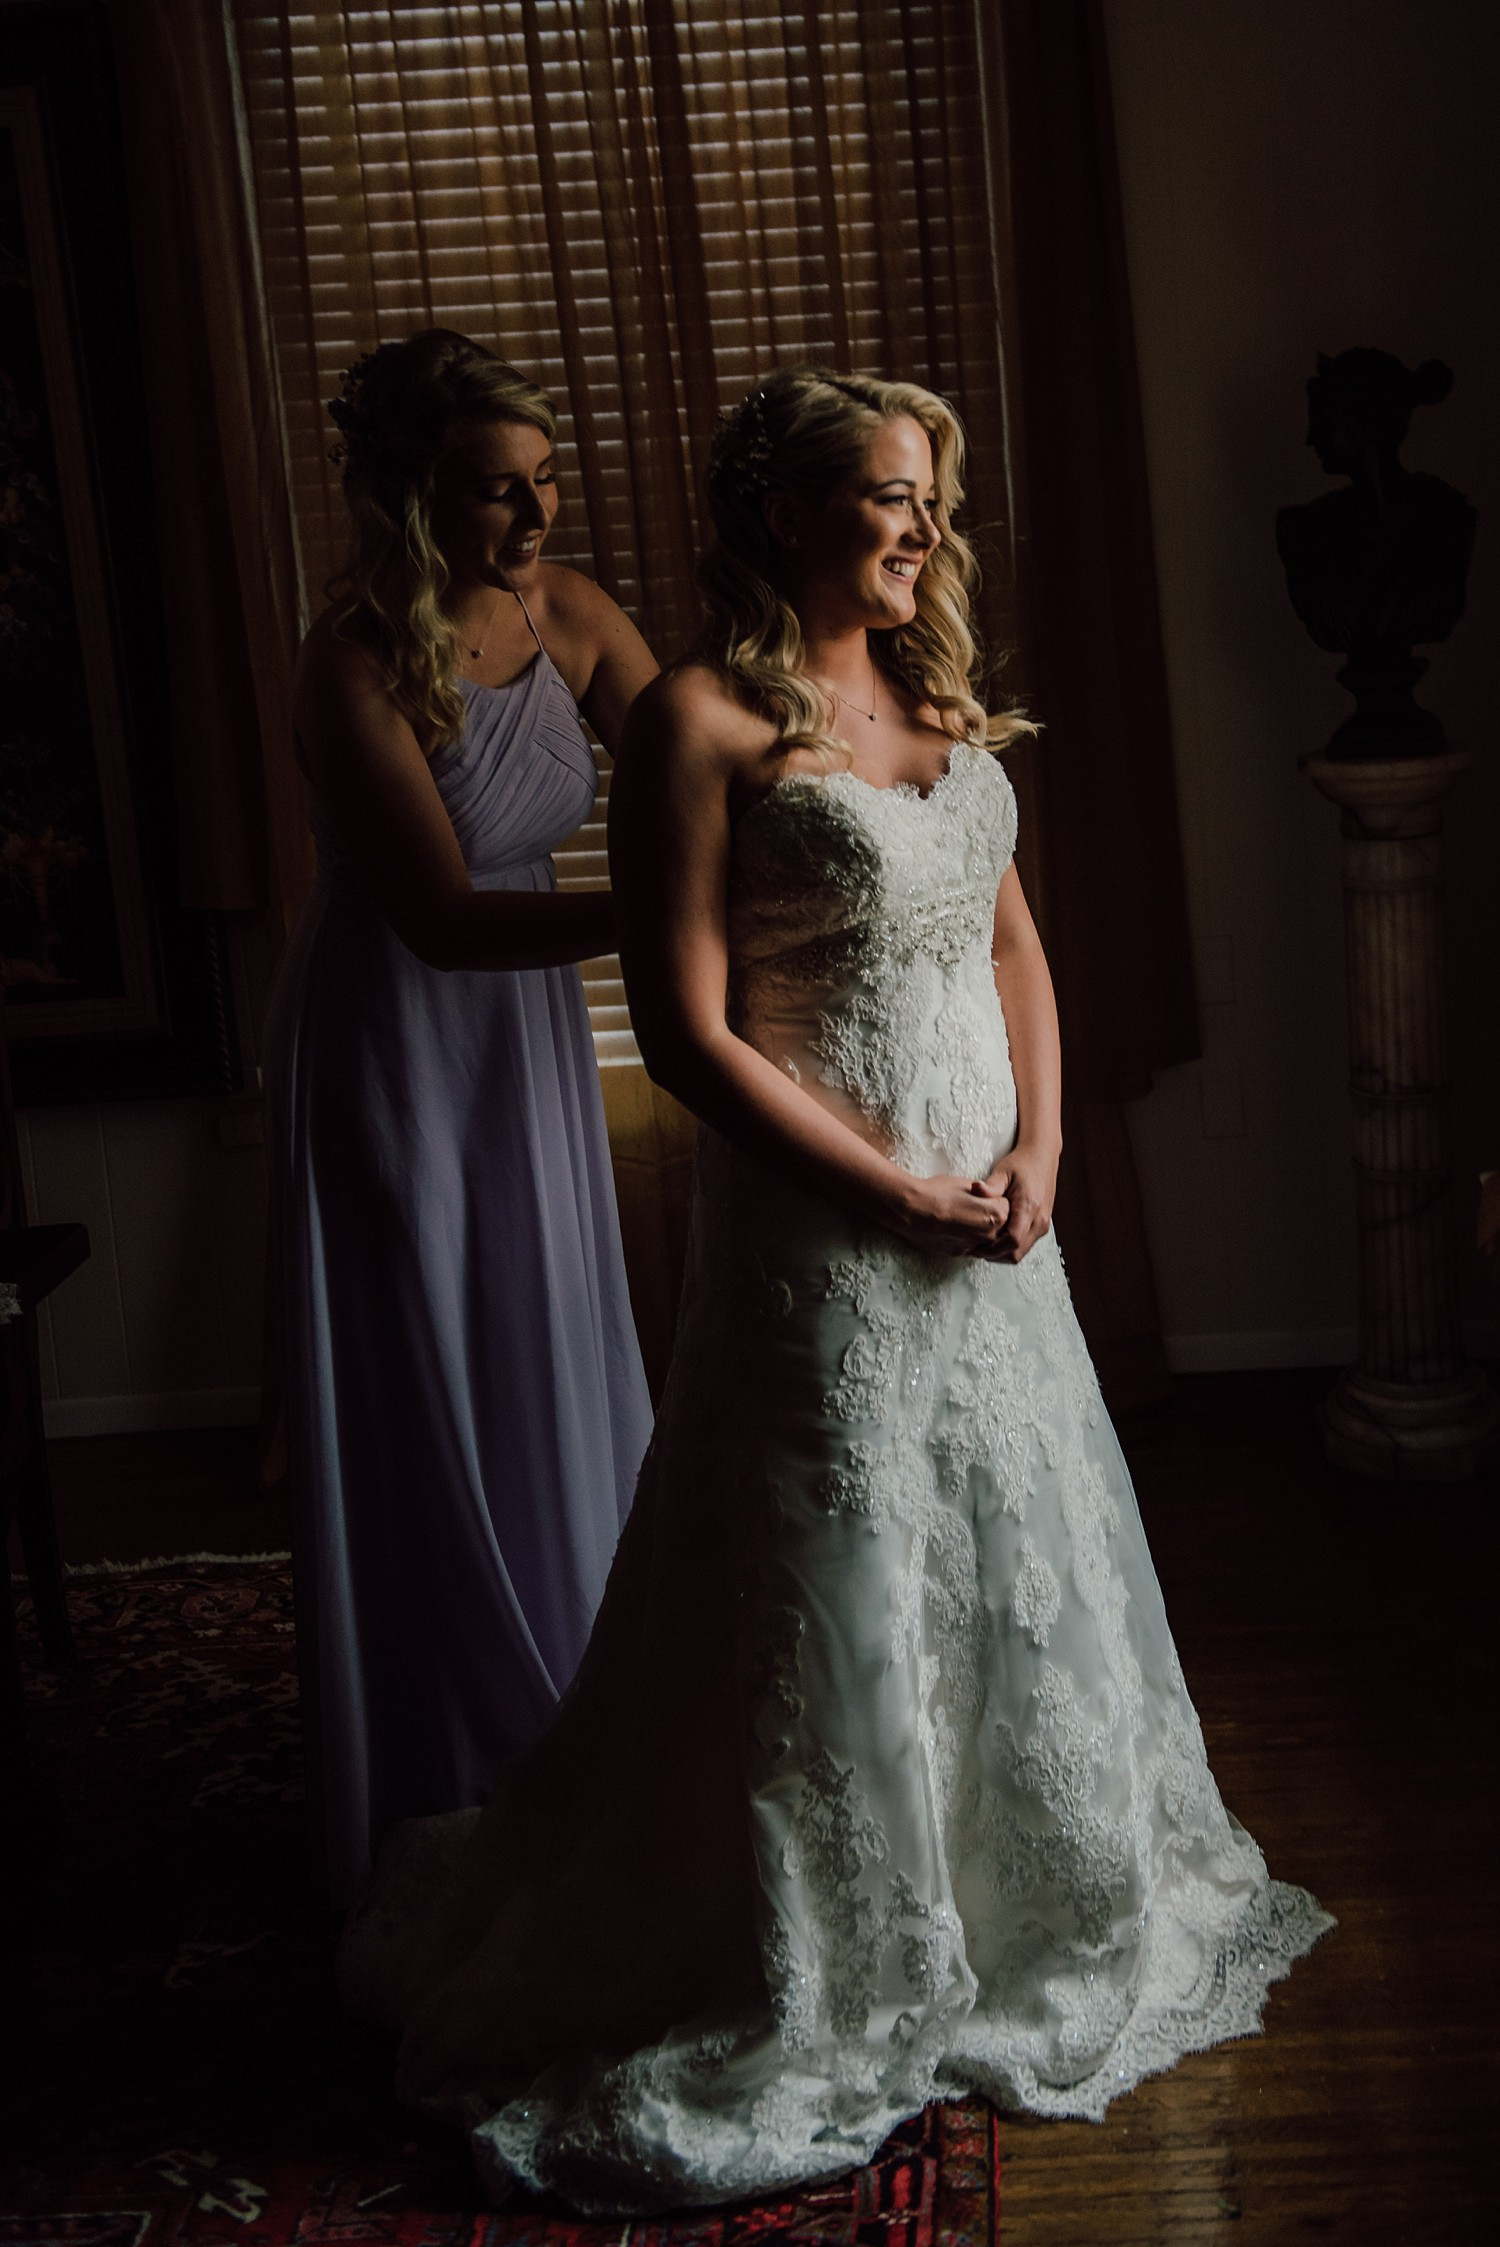 Jackson_Wedding_Girls_Getting_ReadyDSC_4511_0199.jpg